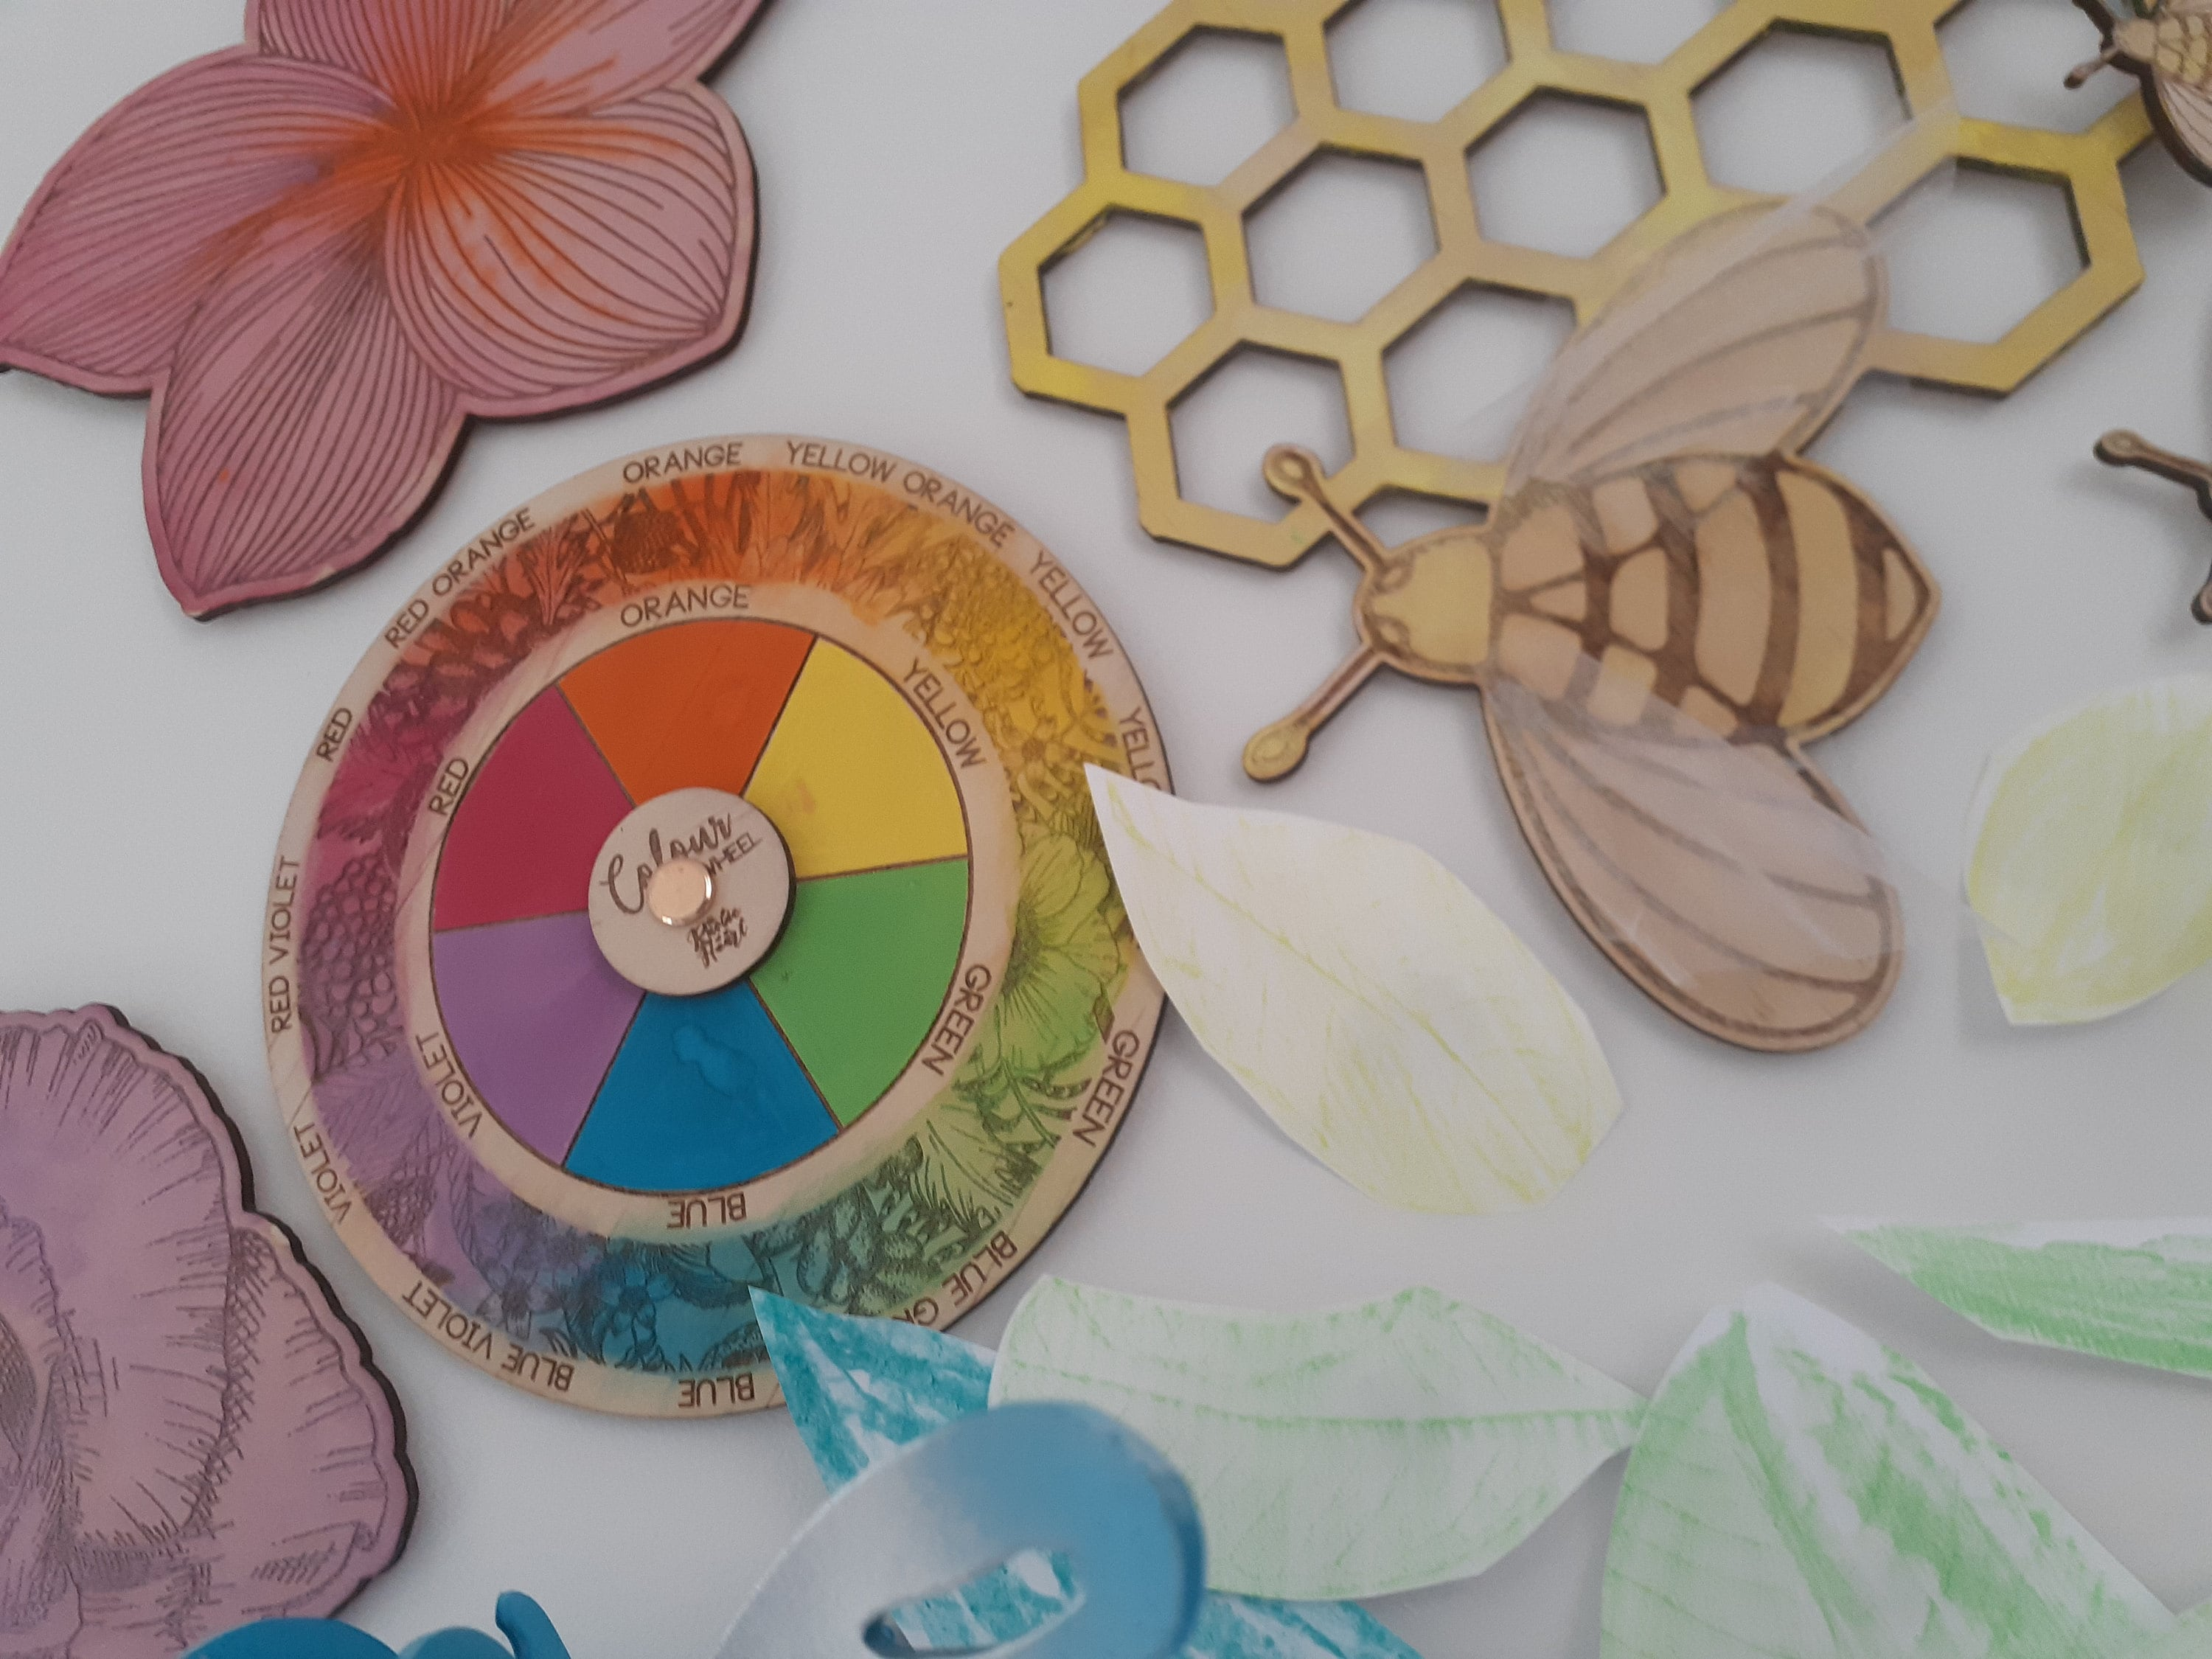 Colour wheel crafts